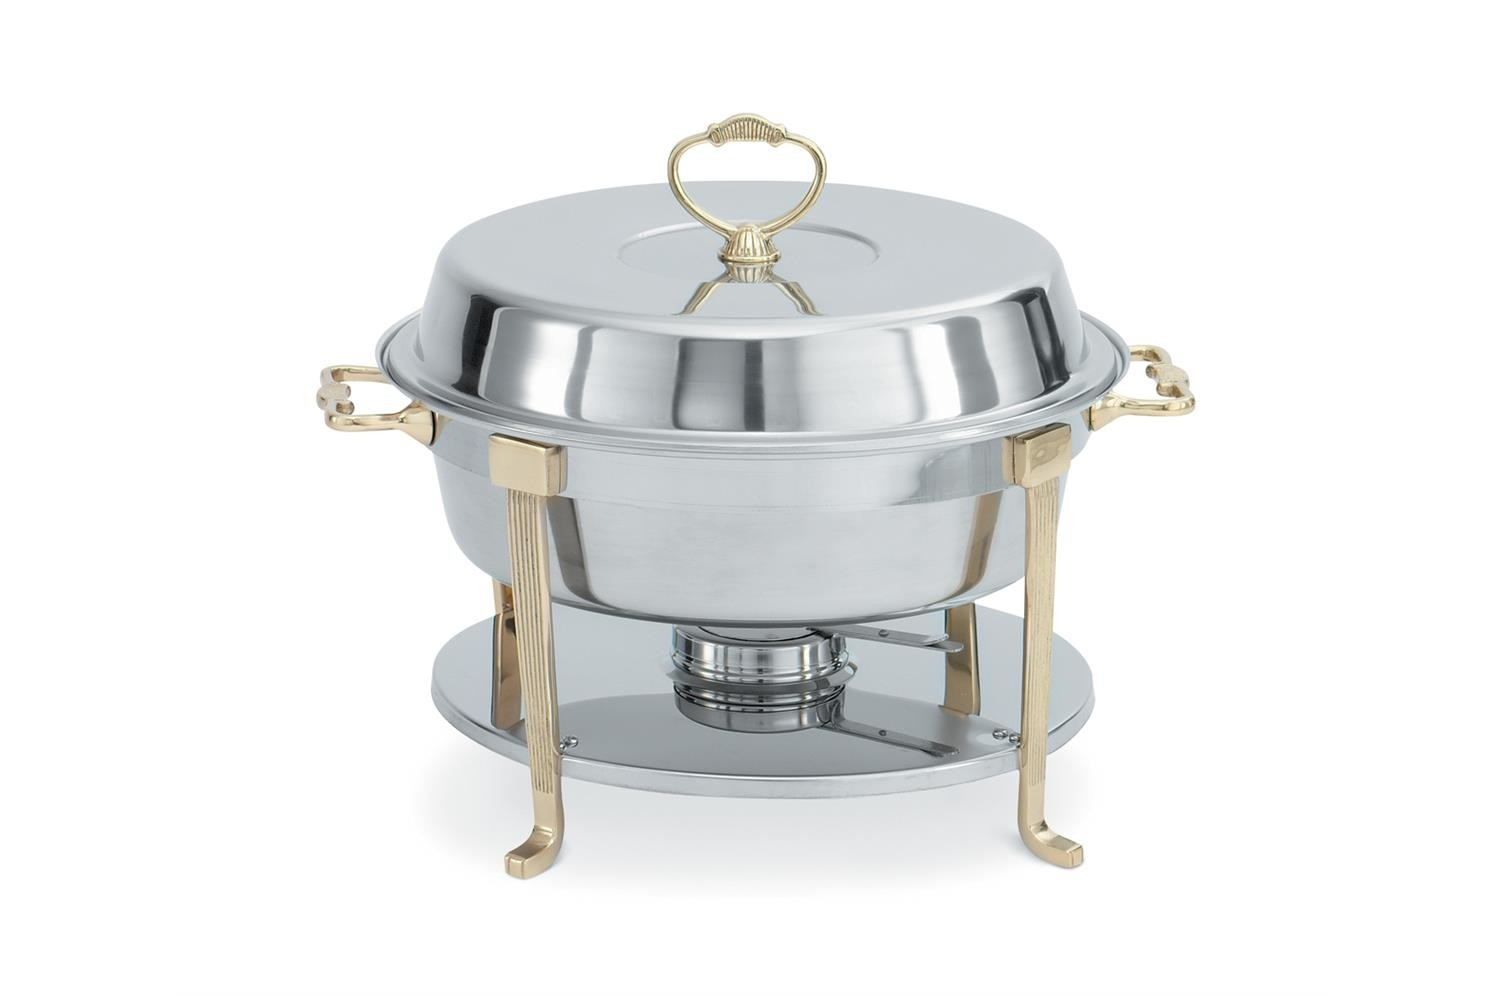 Vollrath 46030 Stainless Steel Round Chafer